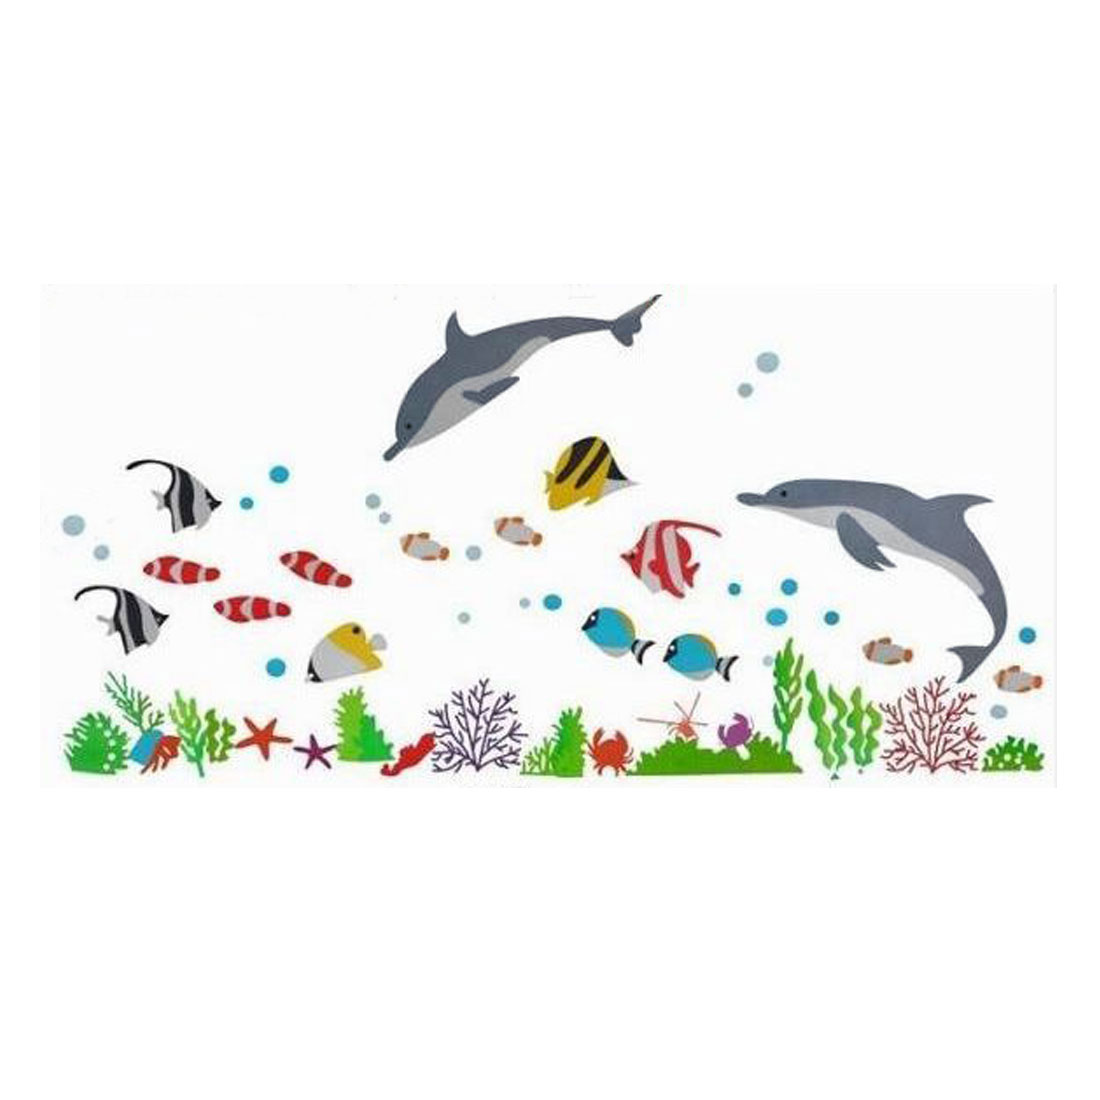 Unique Bargains Home Room Dolphin Fish Pattern Removable Wall Sticker DIY Decal Decor